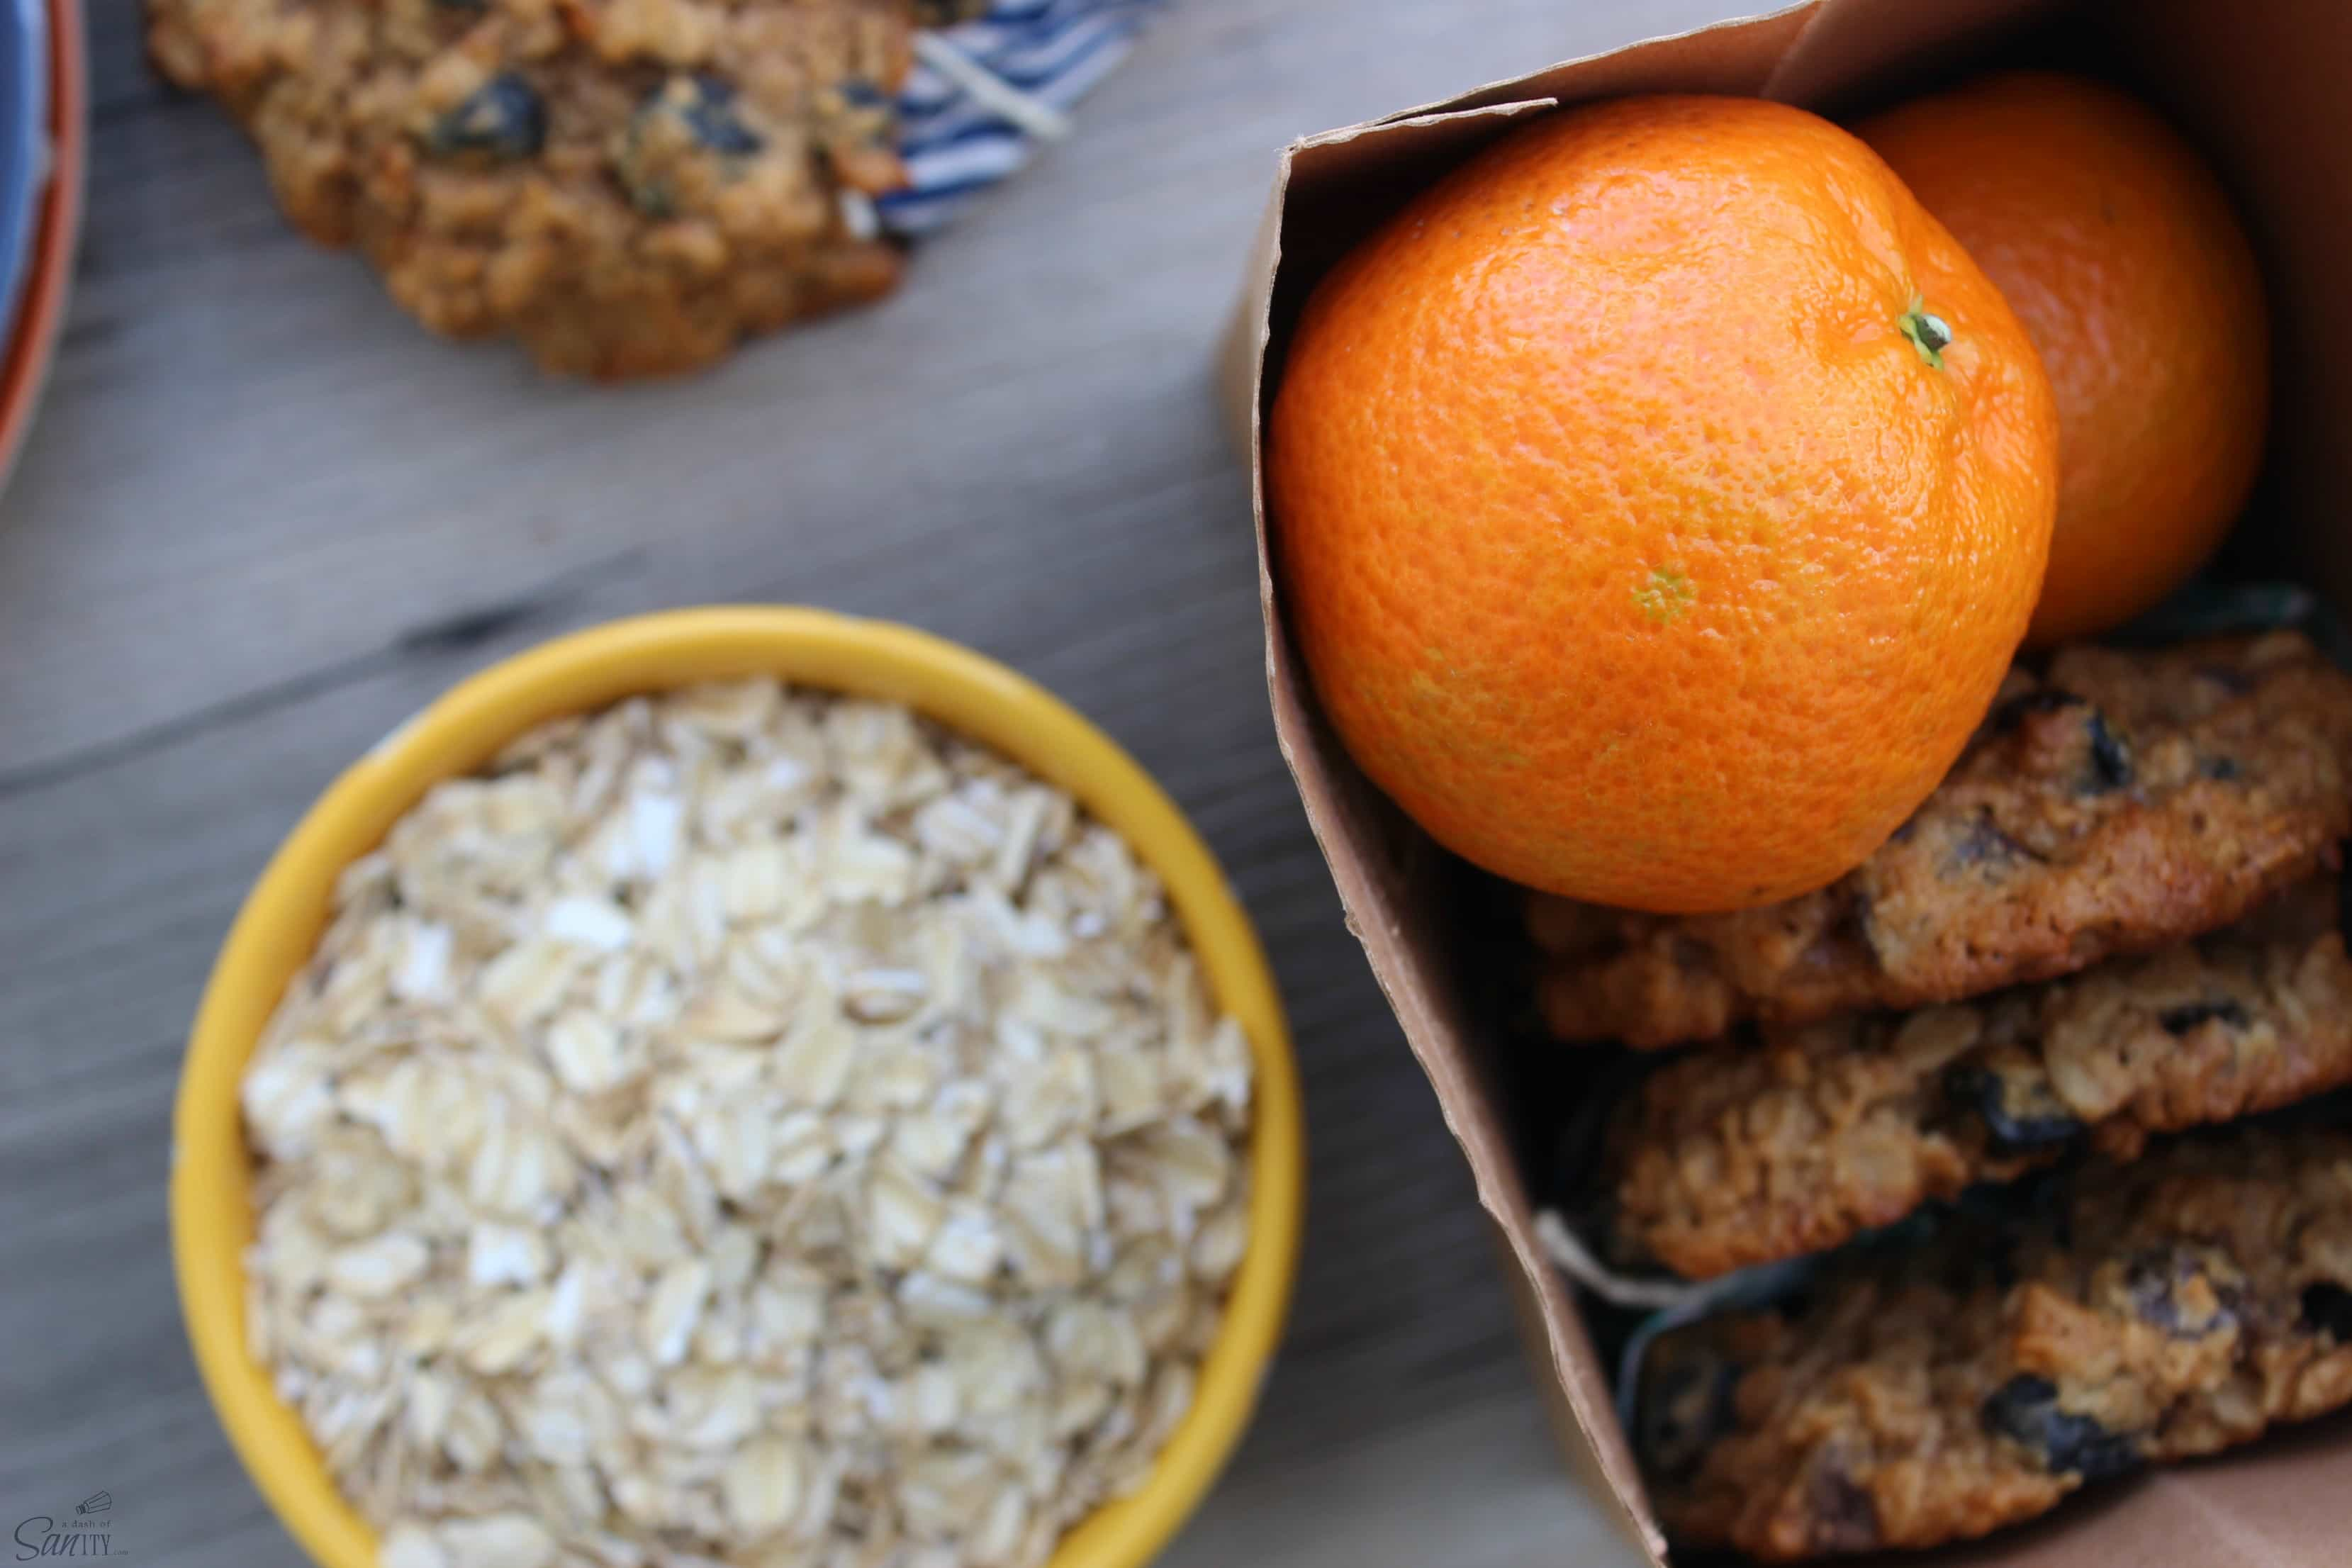 a bowl of oats with an orange